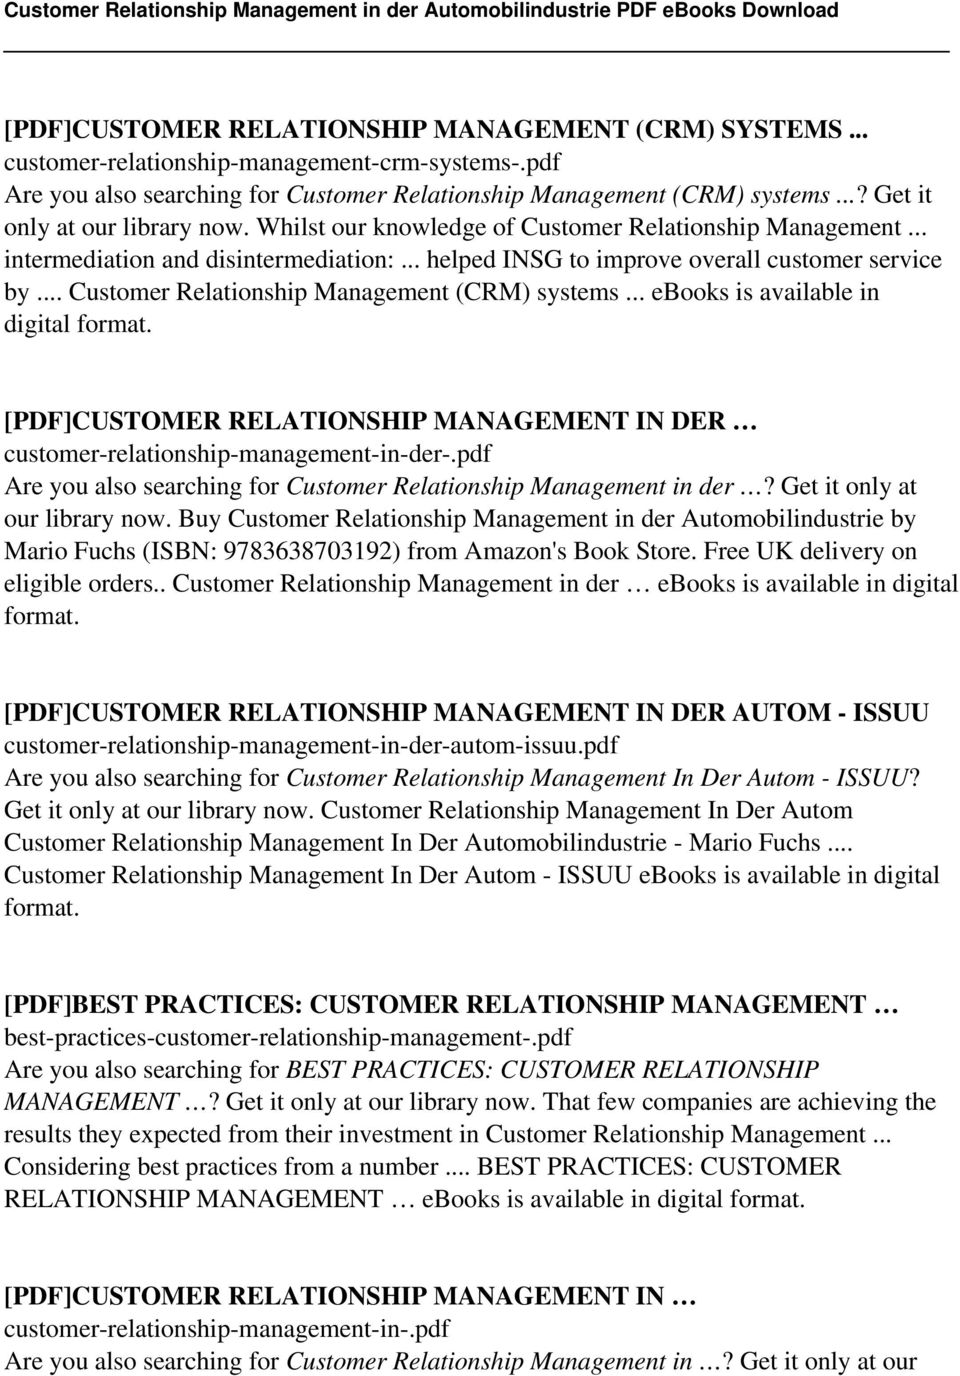 Customer Relationship Management Second Edition Pdf